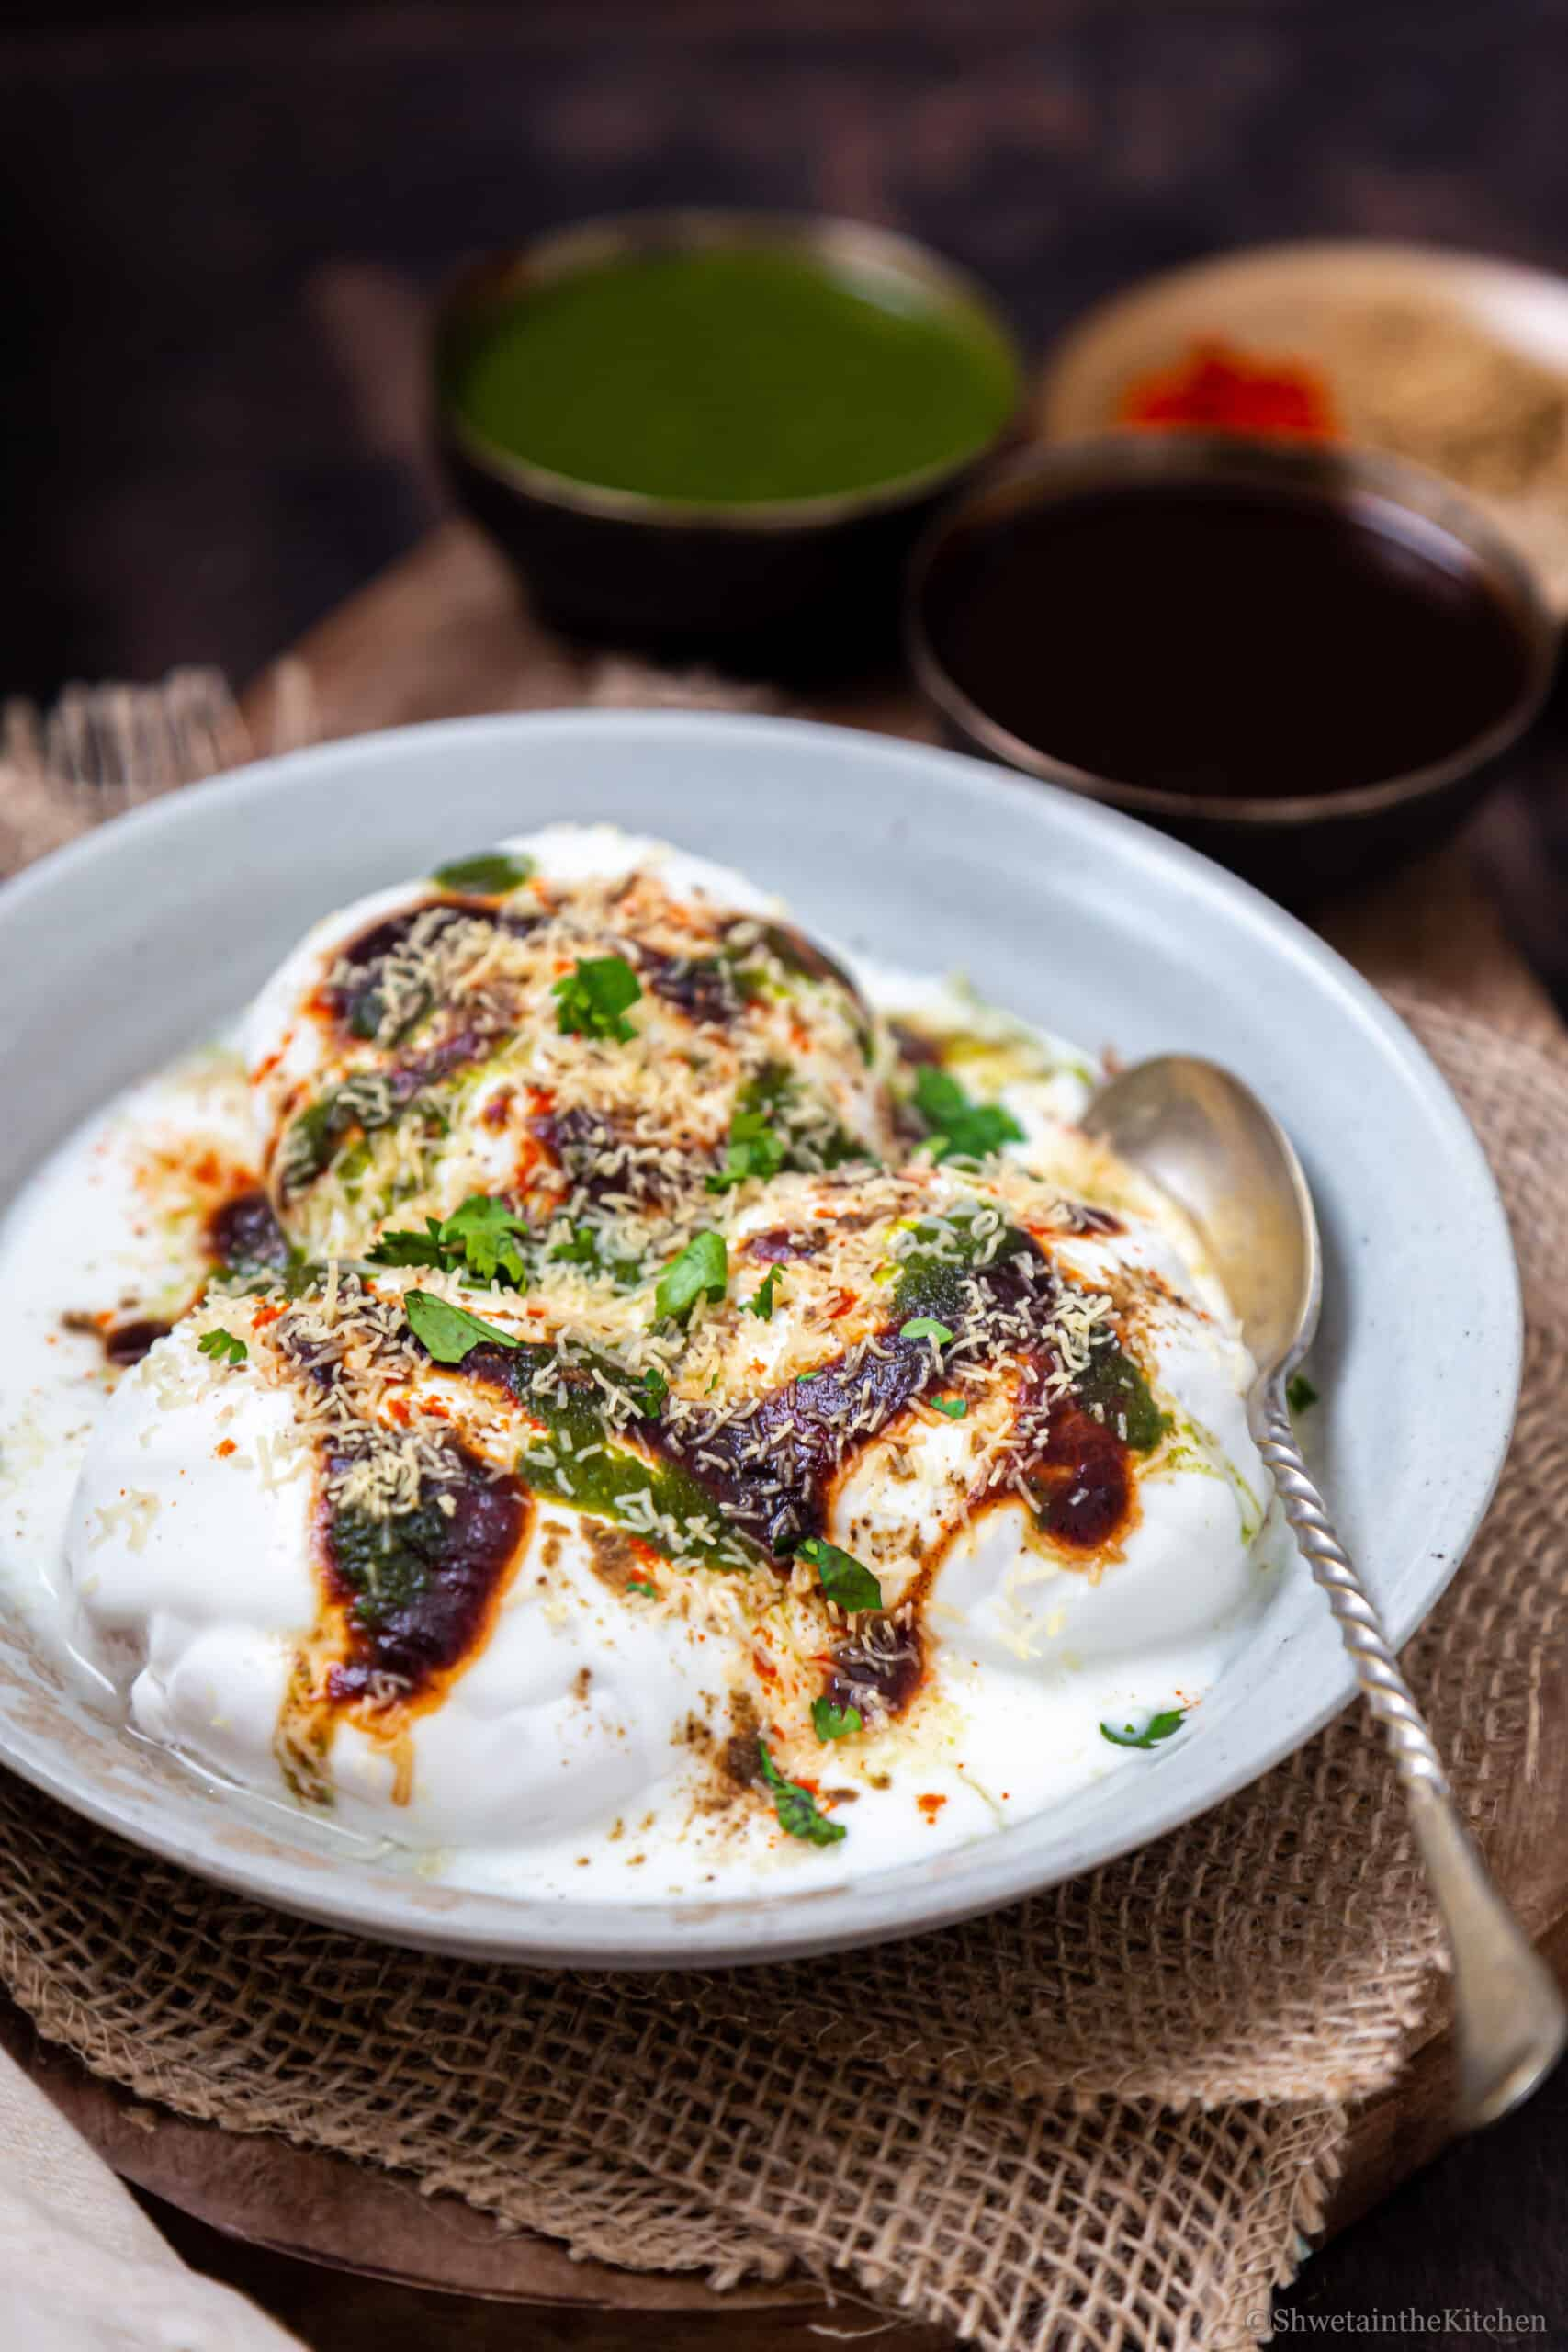 side view of Dahi Vada (Dahi Bhalla) served on a white plate with sweet and spicy chutneys.